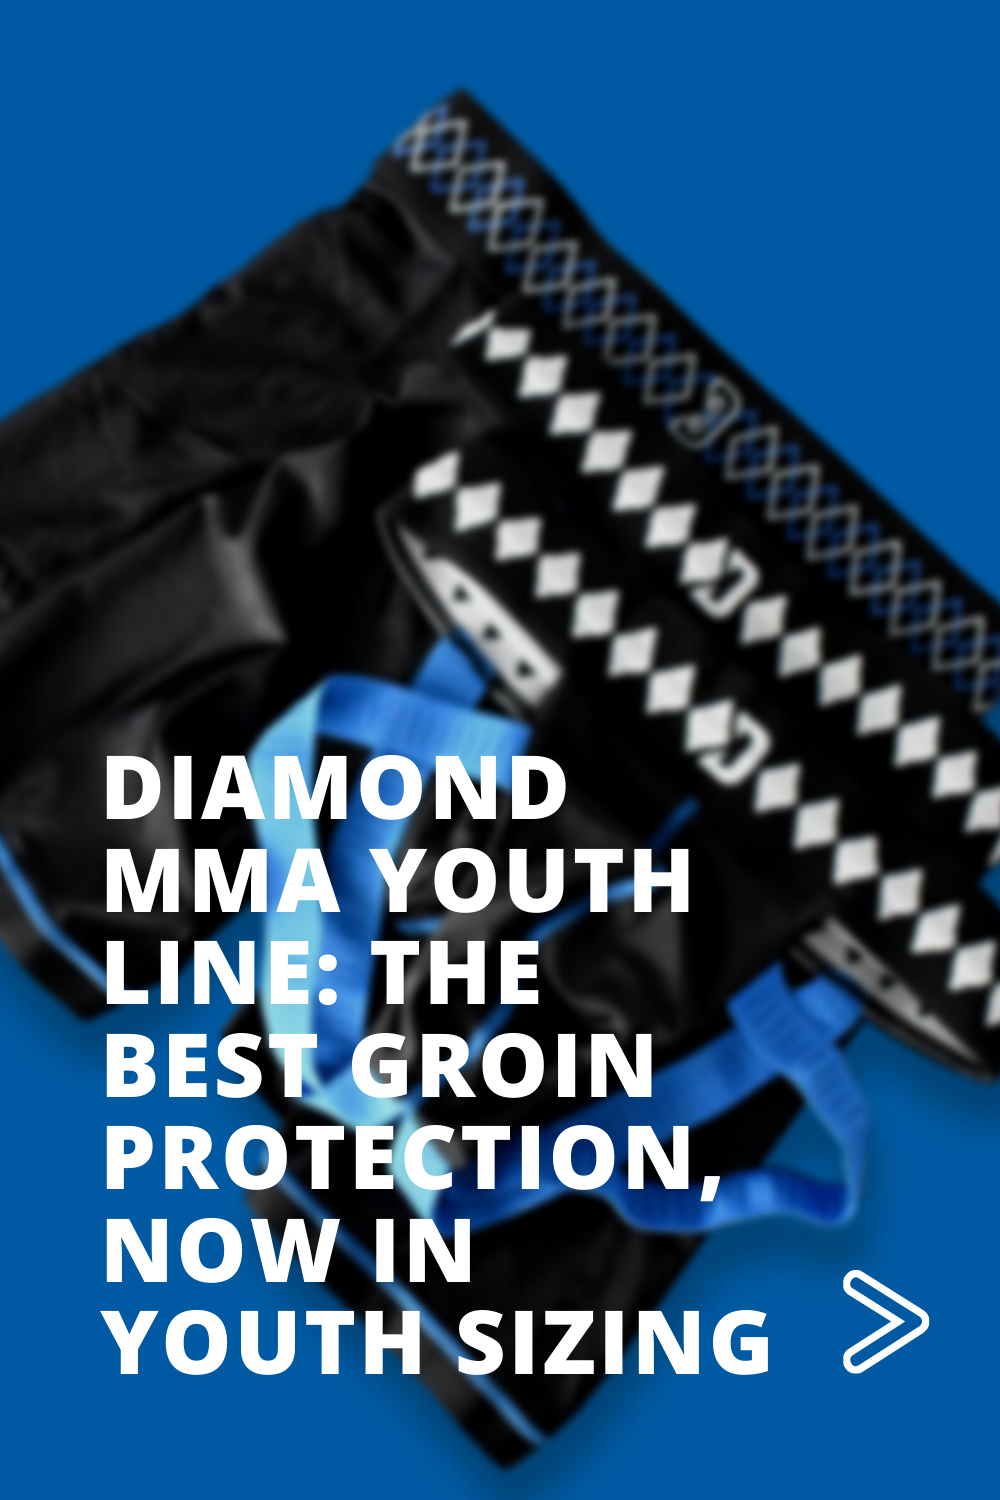 Diamond MMA Youth Line---The Best Groin Protection, Now In Youth Sizing